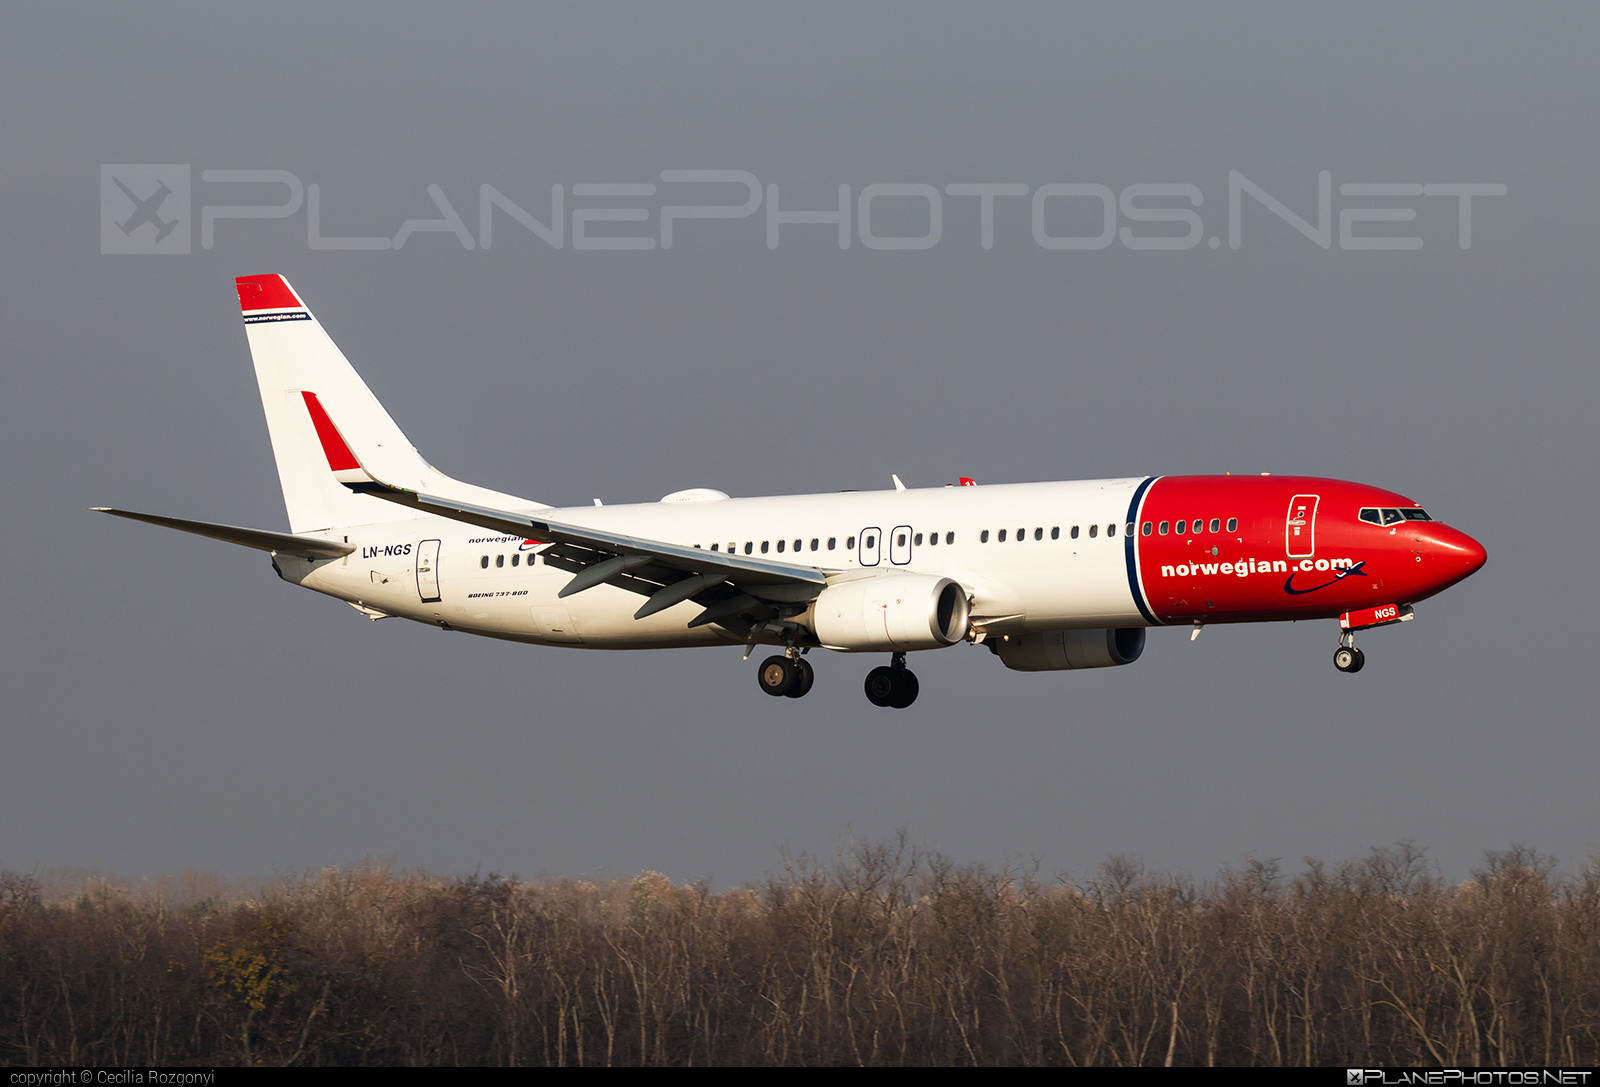 Boeing 737-800 - LN-NGS operated by Norwegian Air Shuttle #b737 #b737nextgen #b737ng #boeing #boeing737 #norwegian #norwegianair #norwegianairshuttle